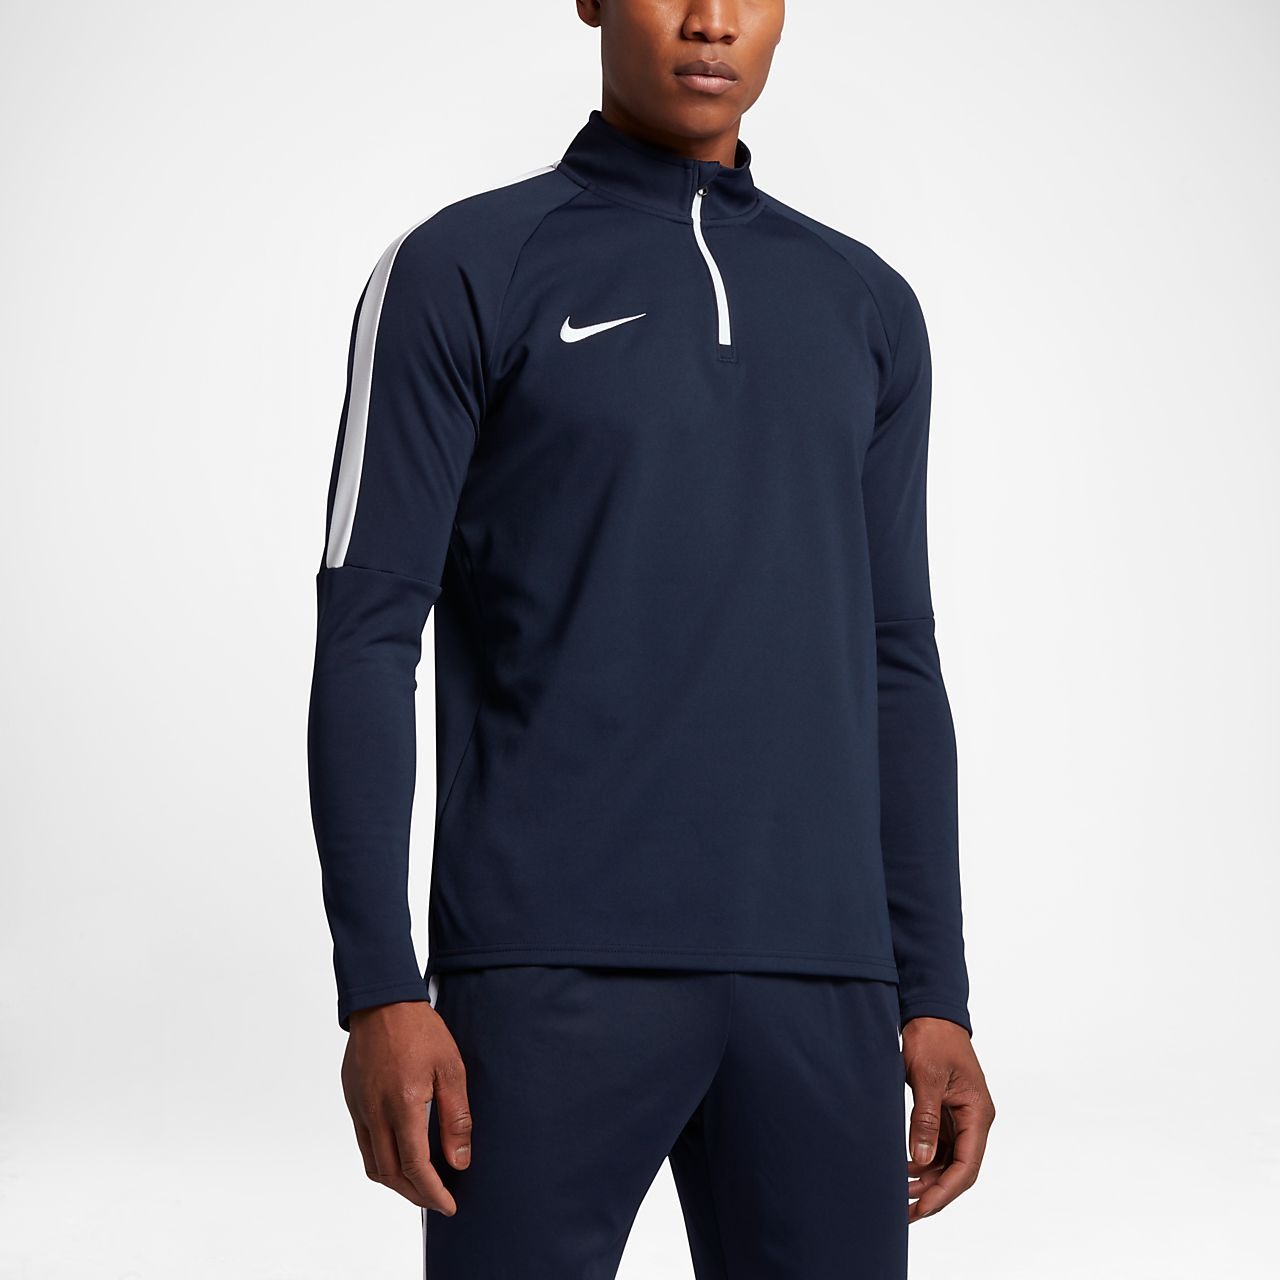 f72ab948 Nike Dri-FIT Academy Men's 1/4 Zip Football Drill Top. Nike.com GB